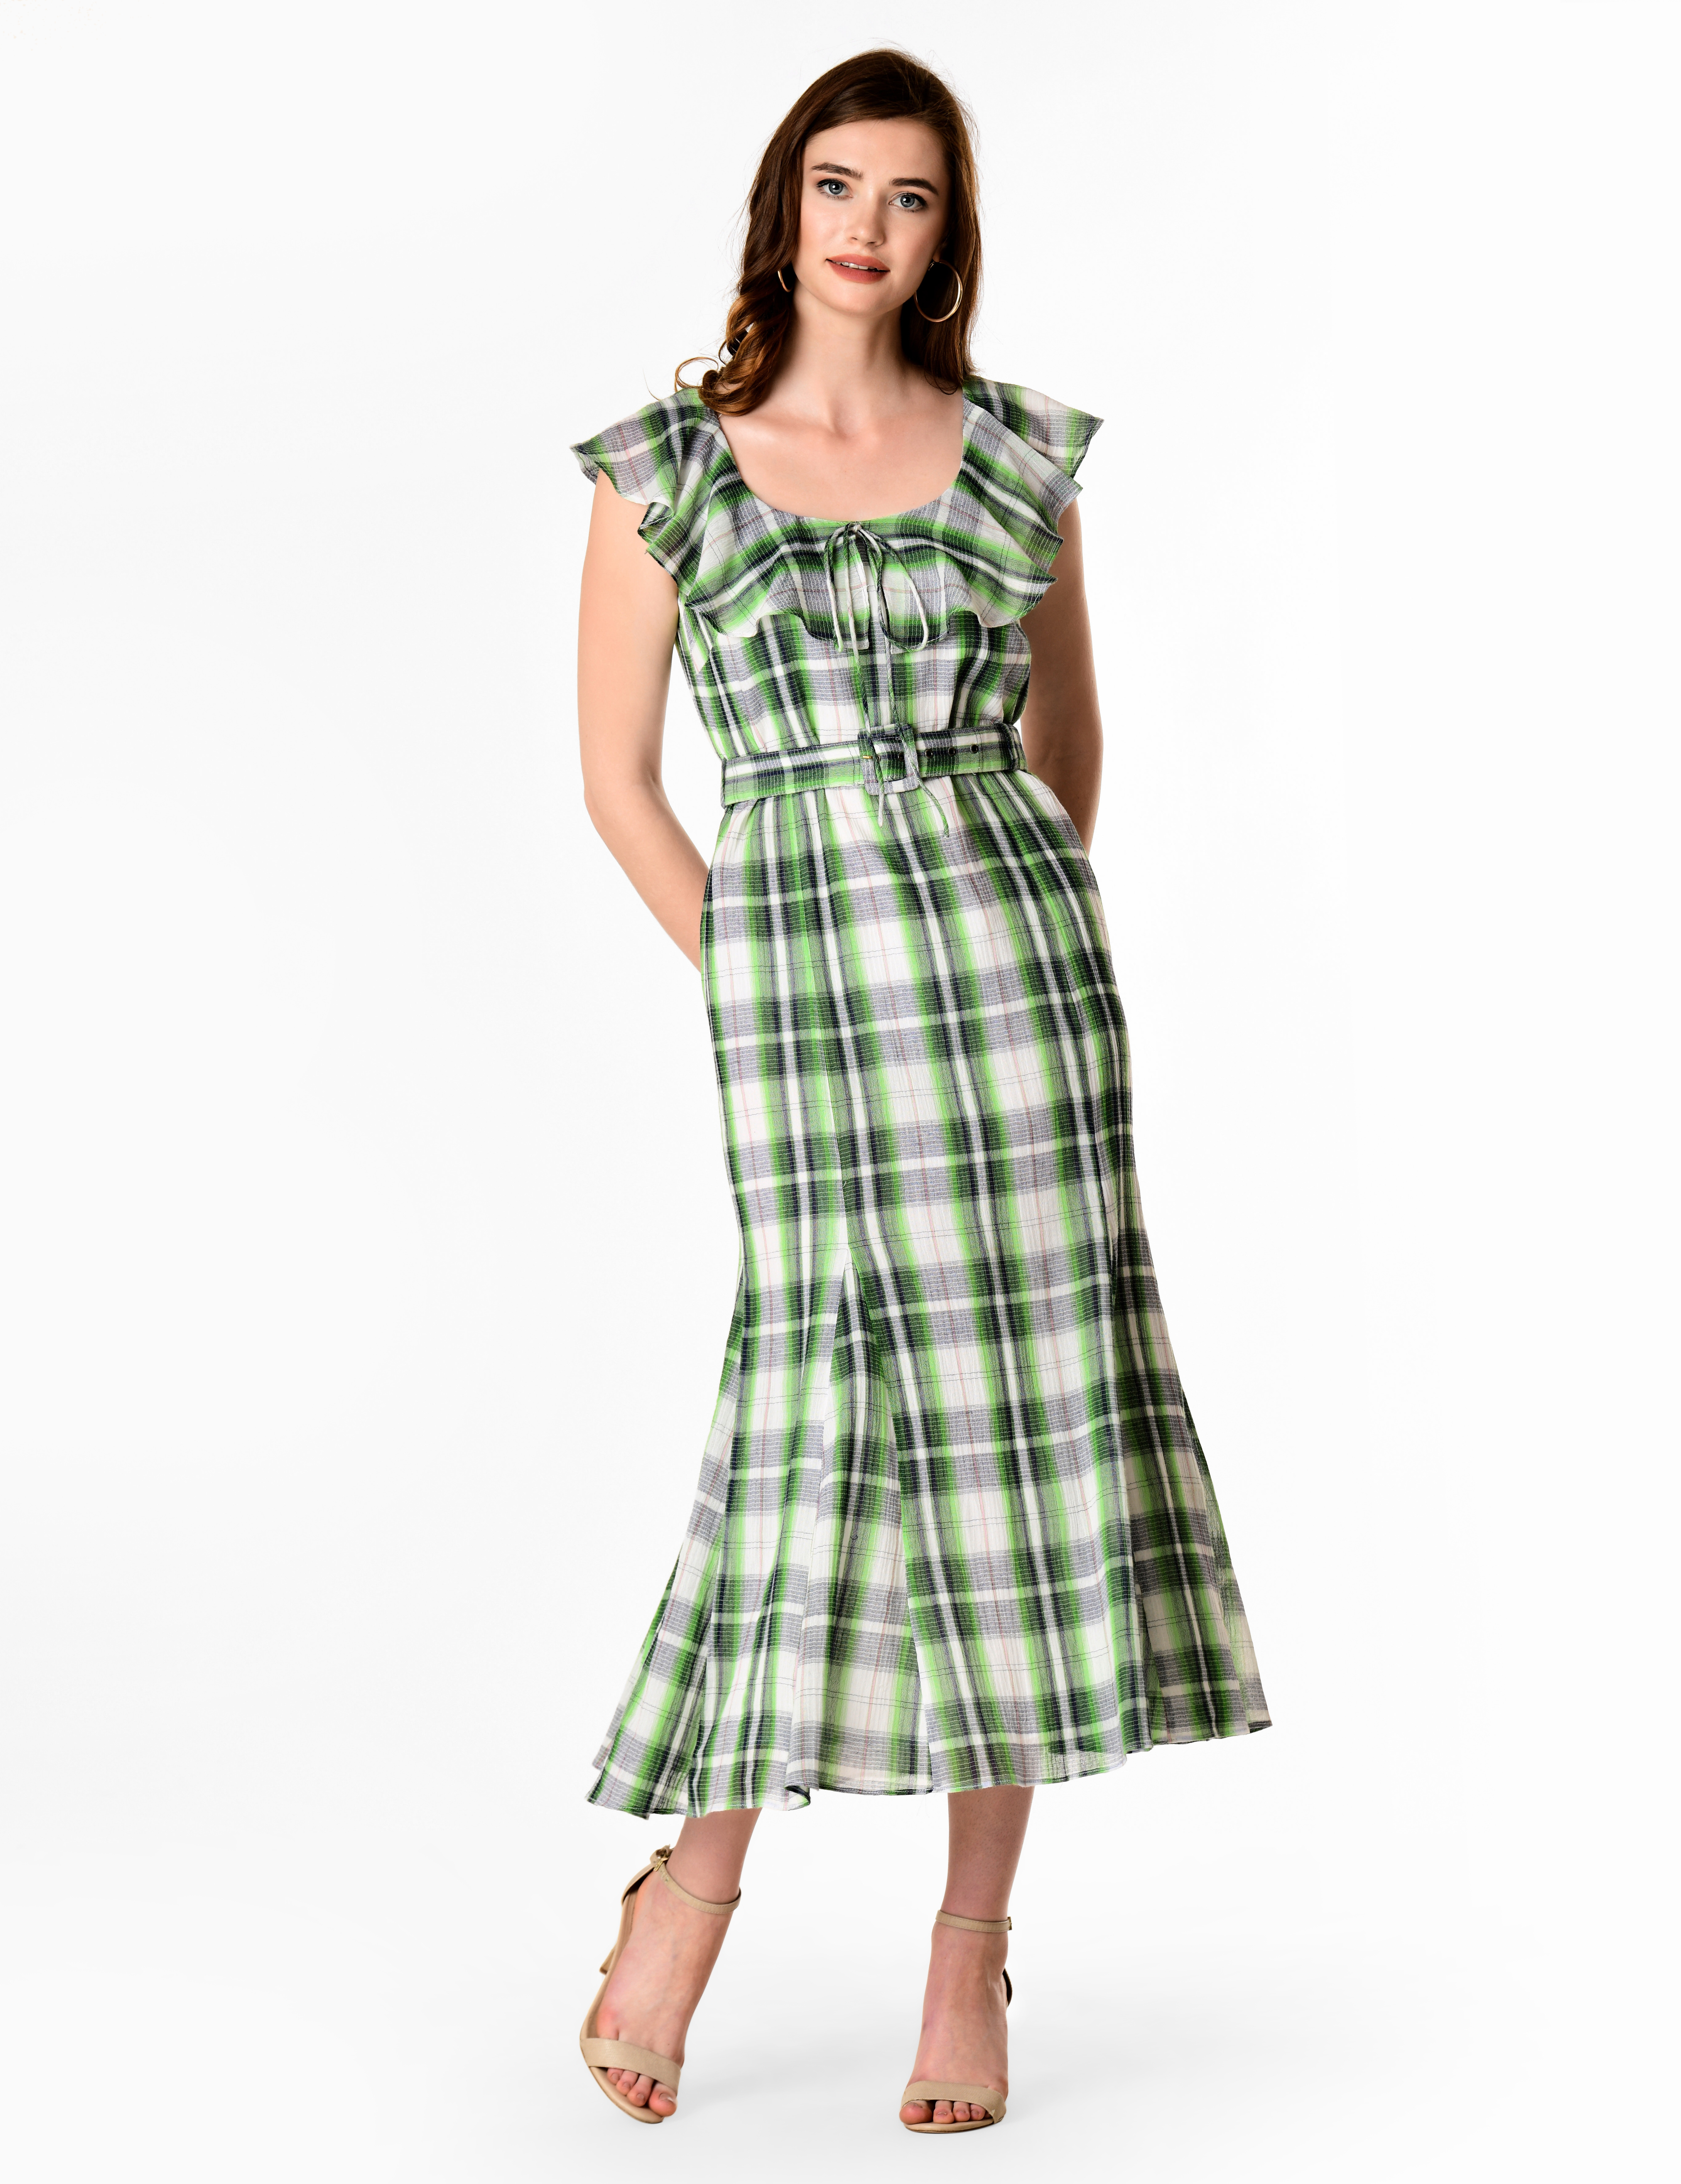 500 Vintage Style Dresses for Sale Ruffle cotton check gauze fluted high-low dress $69.95 AT vintagedancer.com